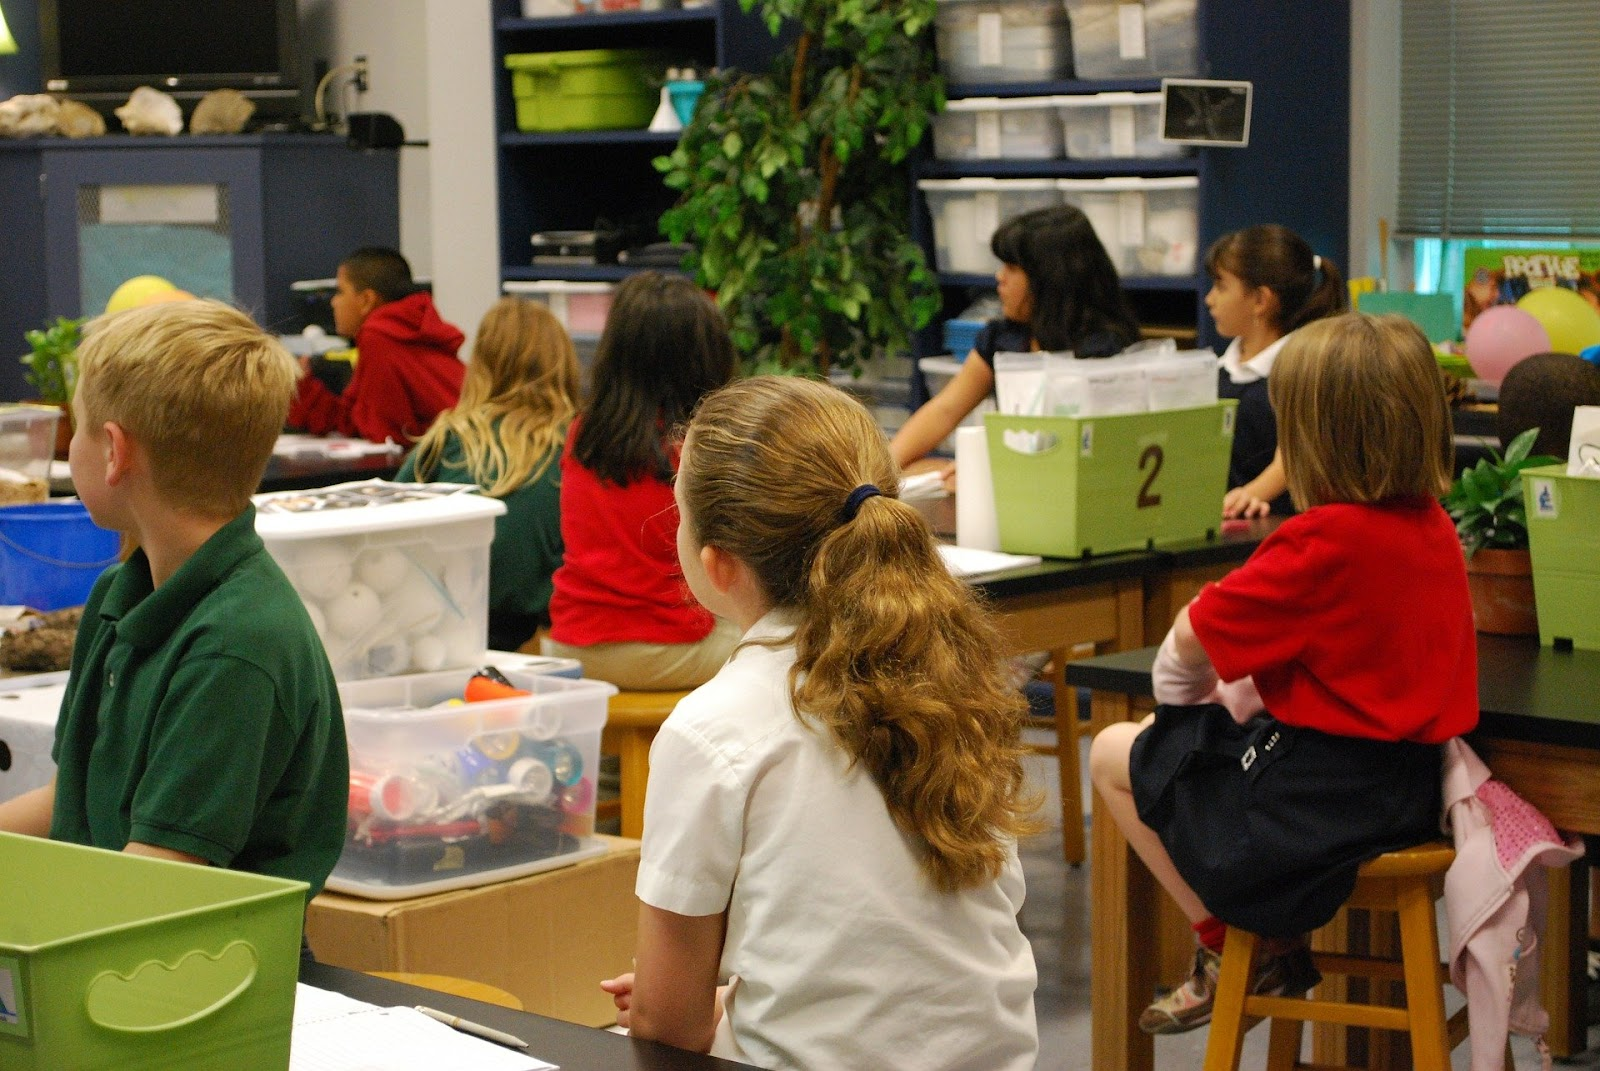 This is a group of students seated at their tables in their elementary classroom. STEM kits are placed throughout the room in matching numbered bins.